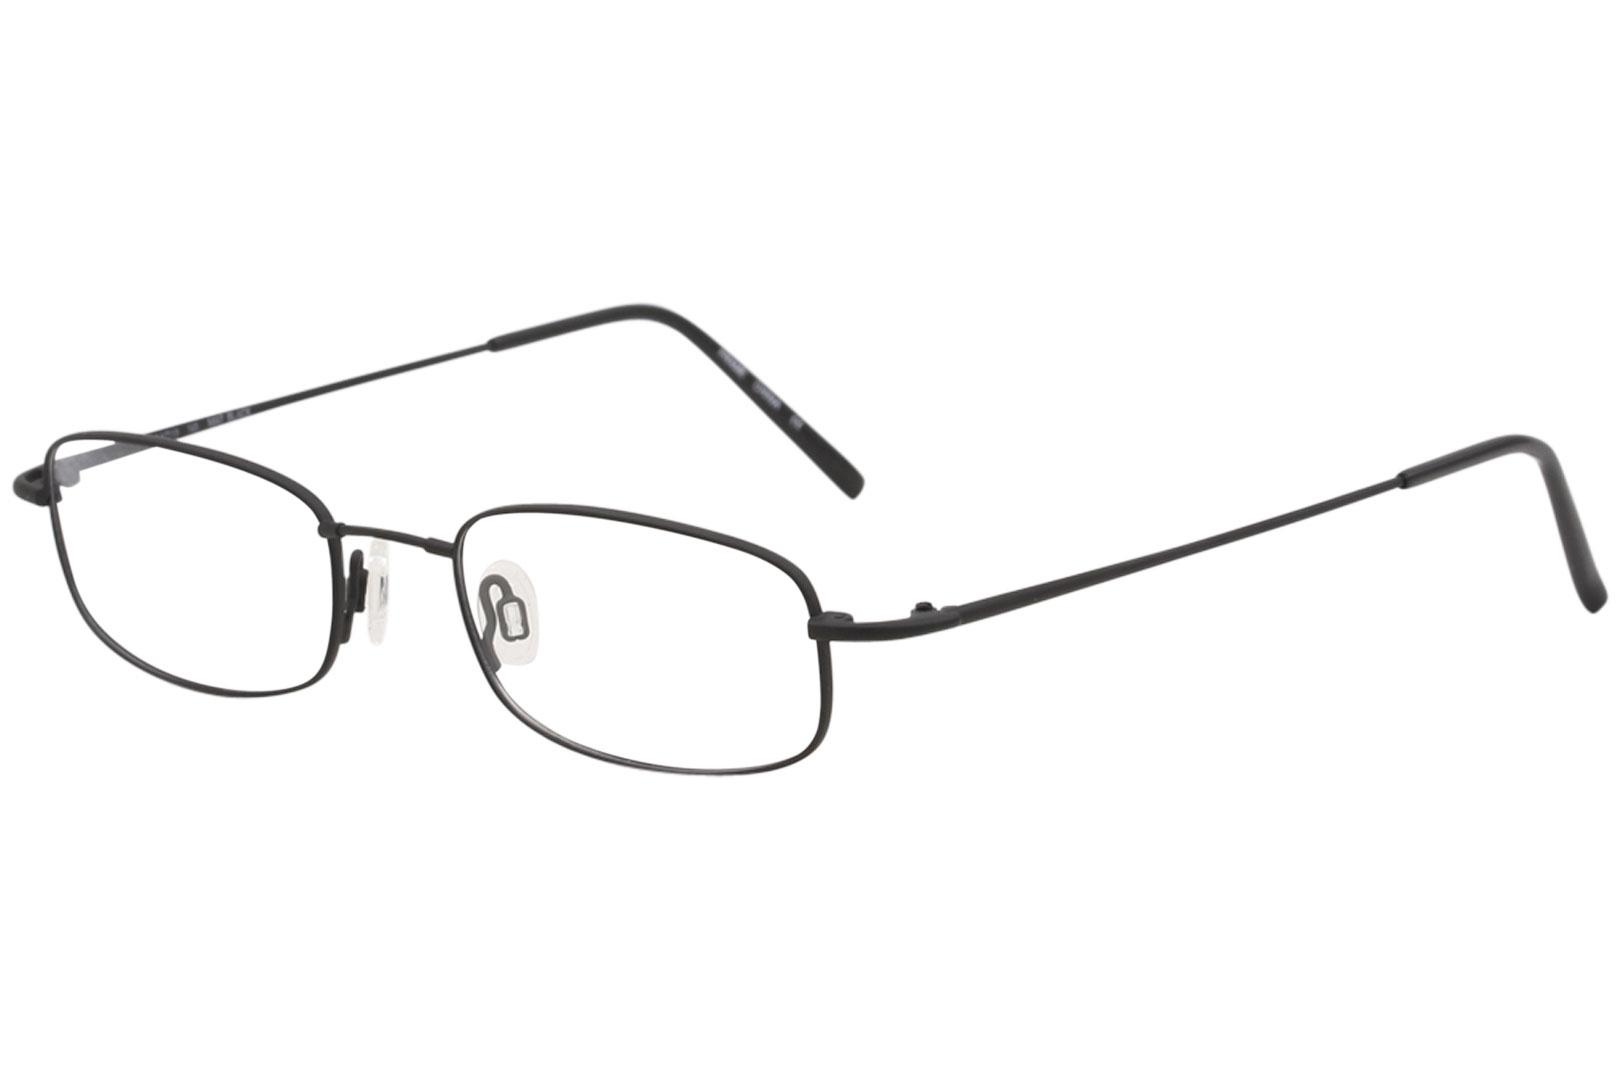 Image of Flexon Men's Eyeglasses 603 002 Matte Black Full Rim Optical Frame 51mm - Matte Black   002 - Lens 51 Bridge 19 Temple 145mm